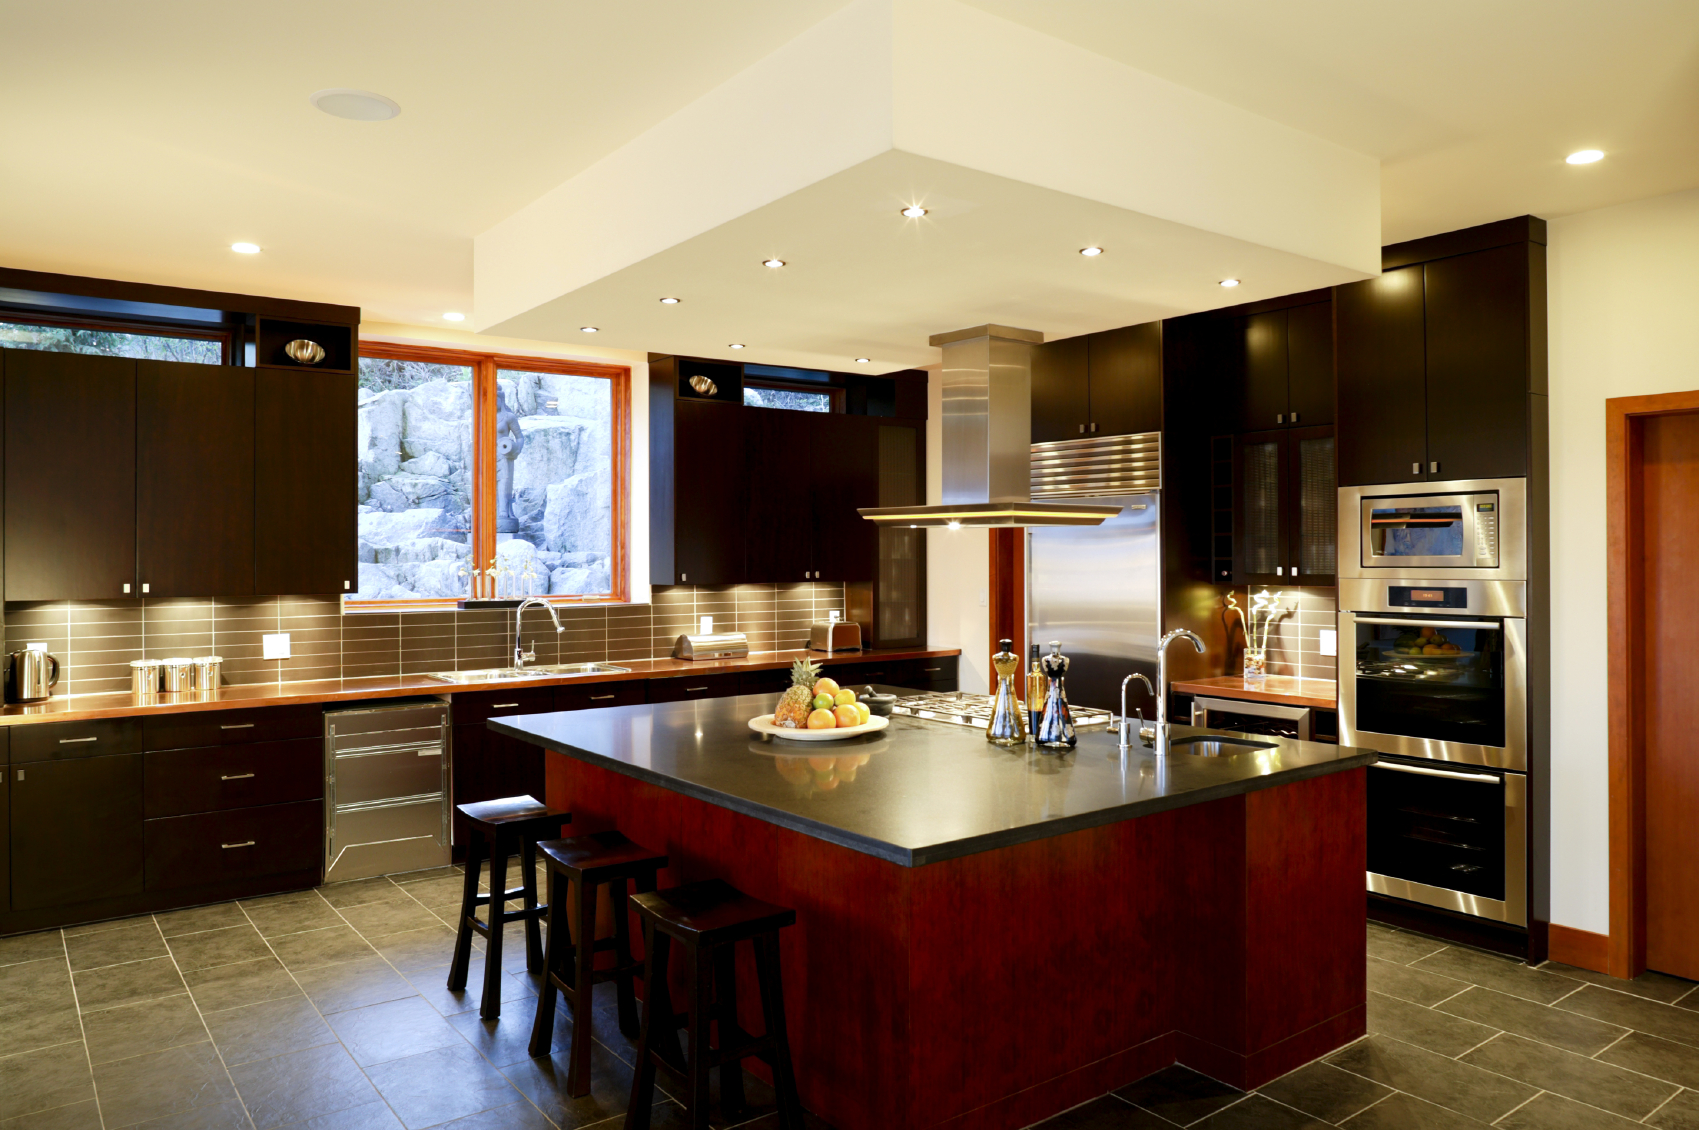 XCiting Constructions - Kitchens